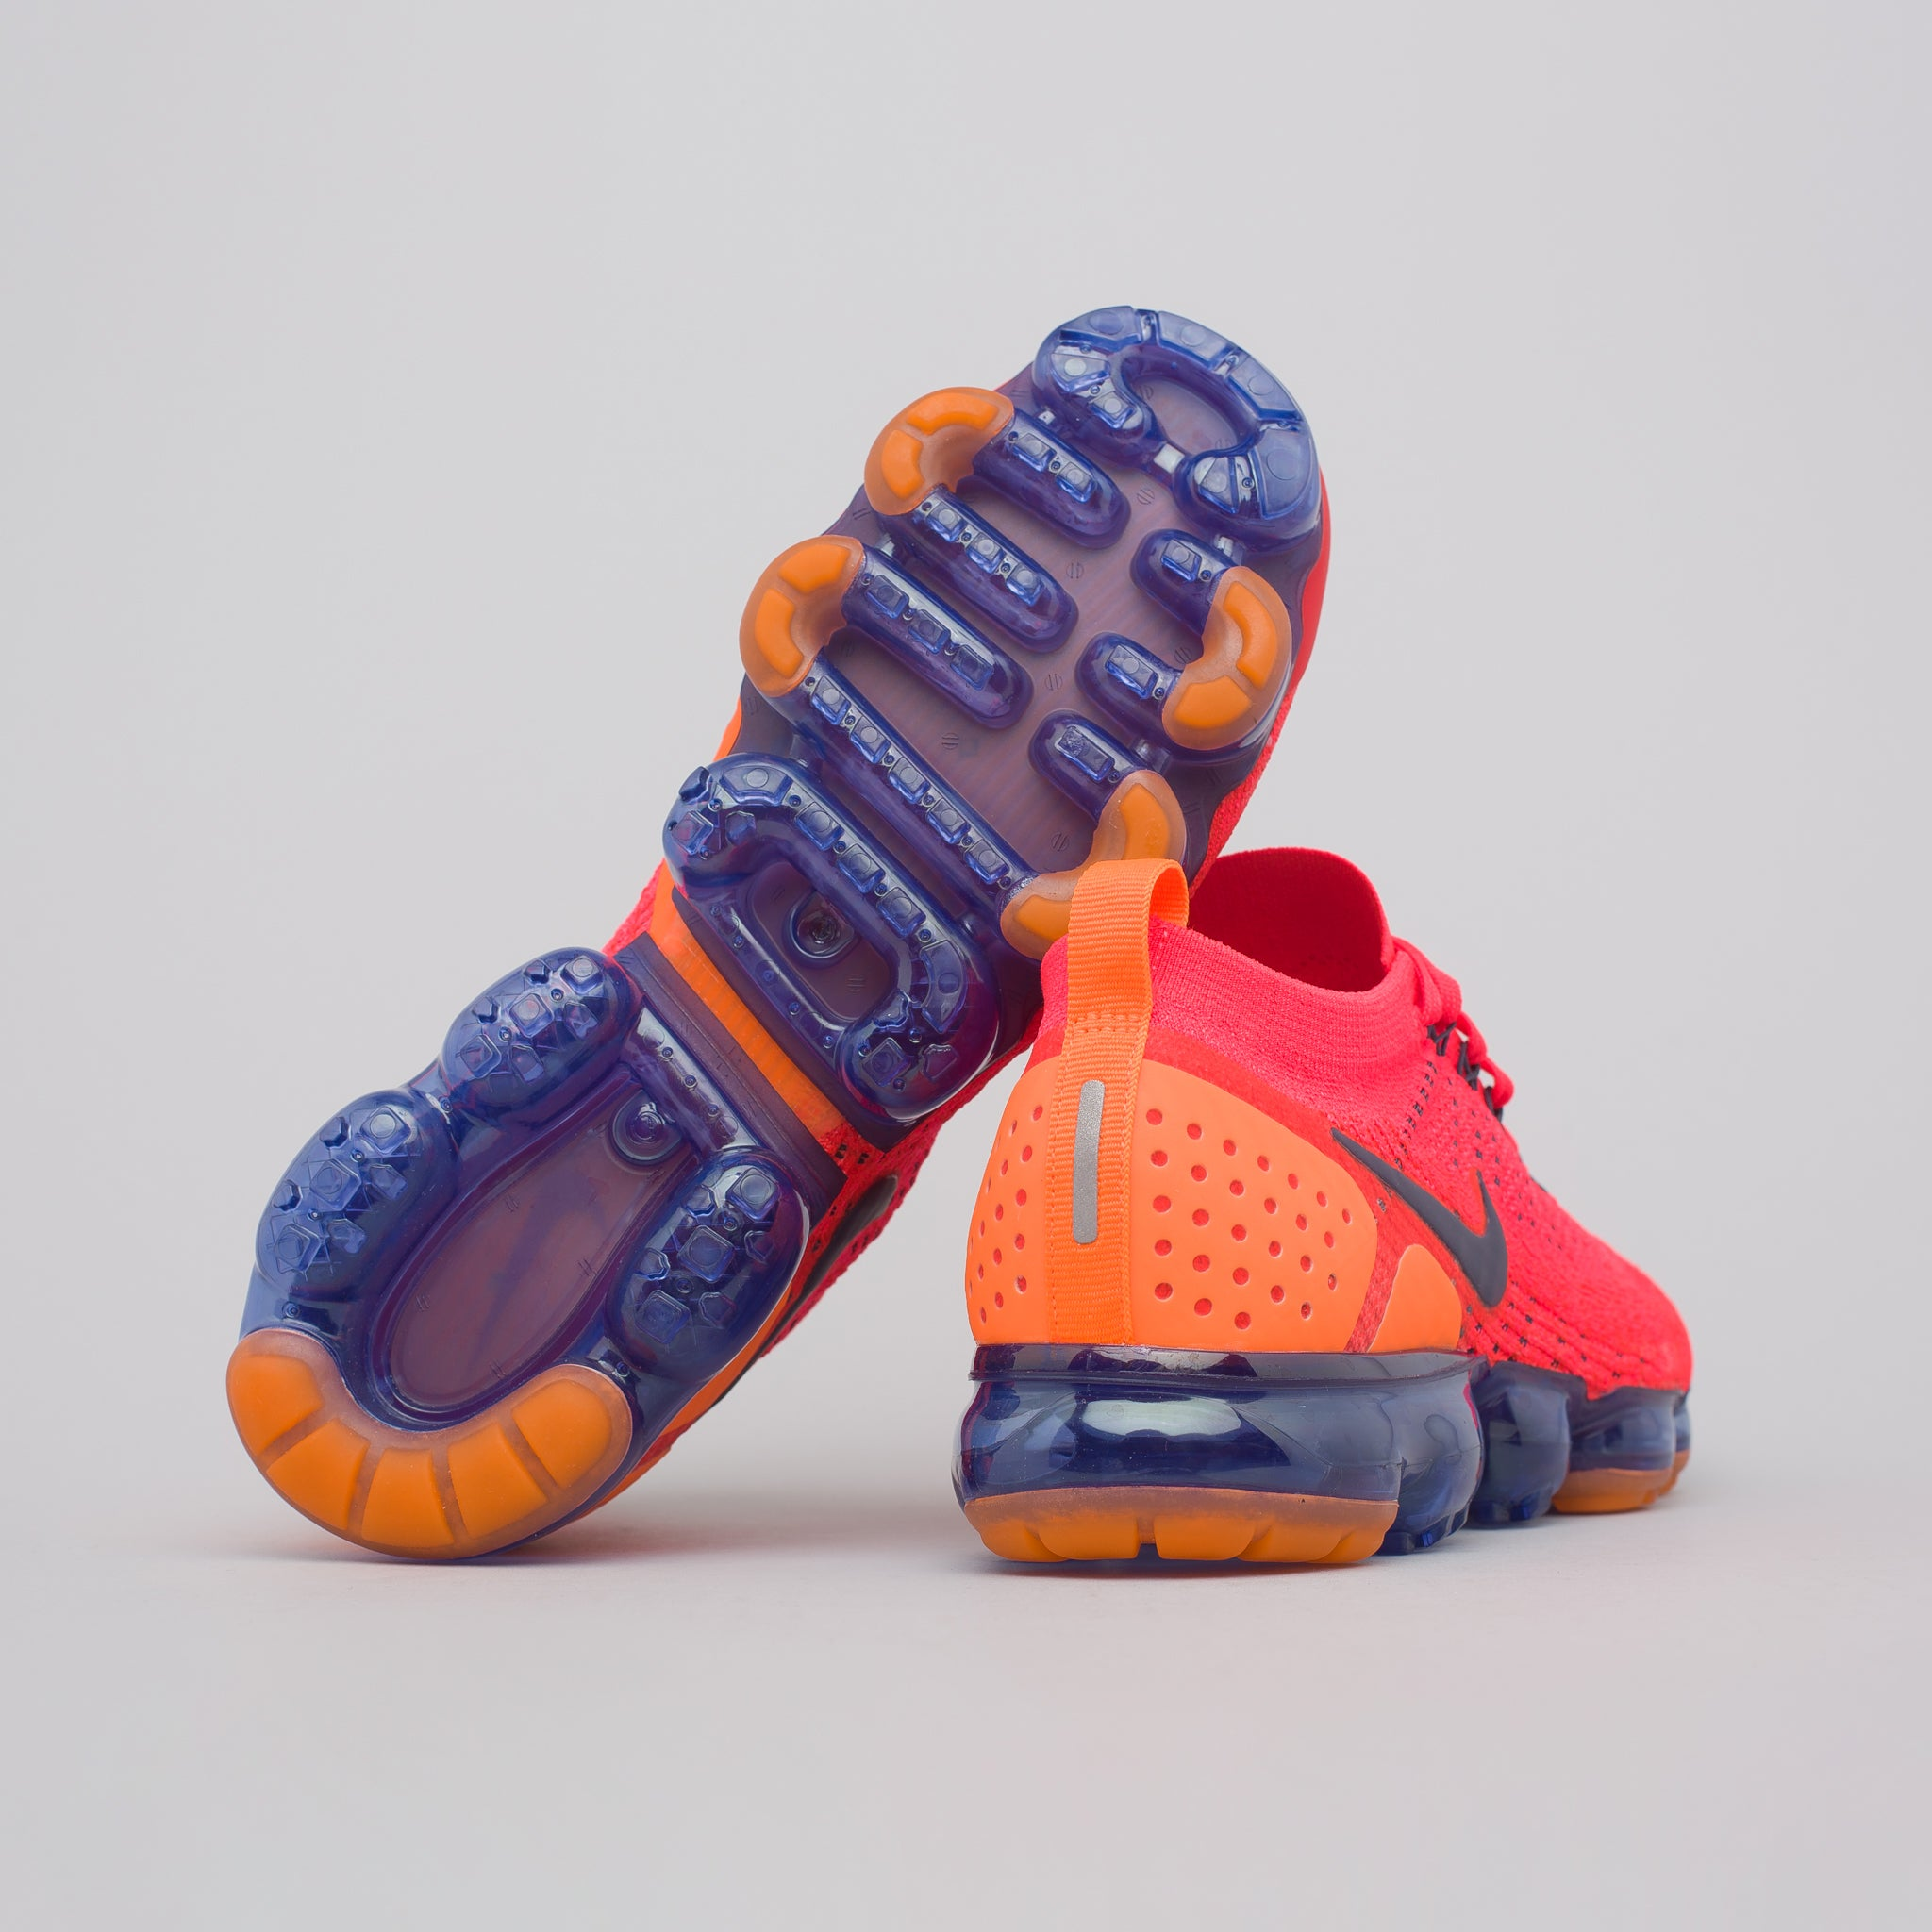 Air Vapormax Flyknit 2 in Red Orbit